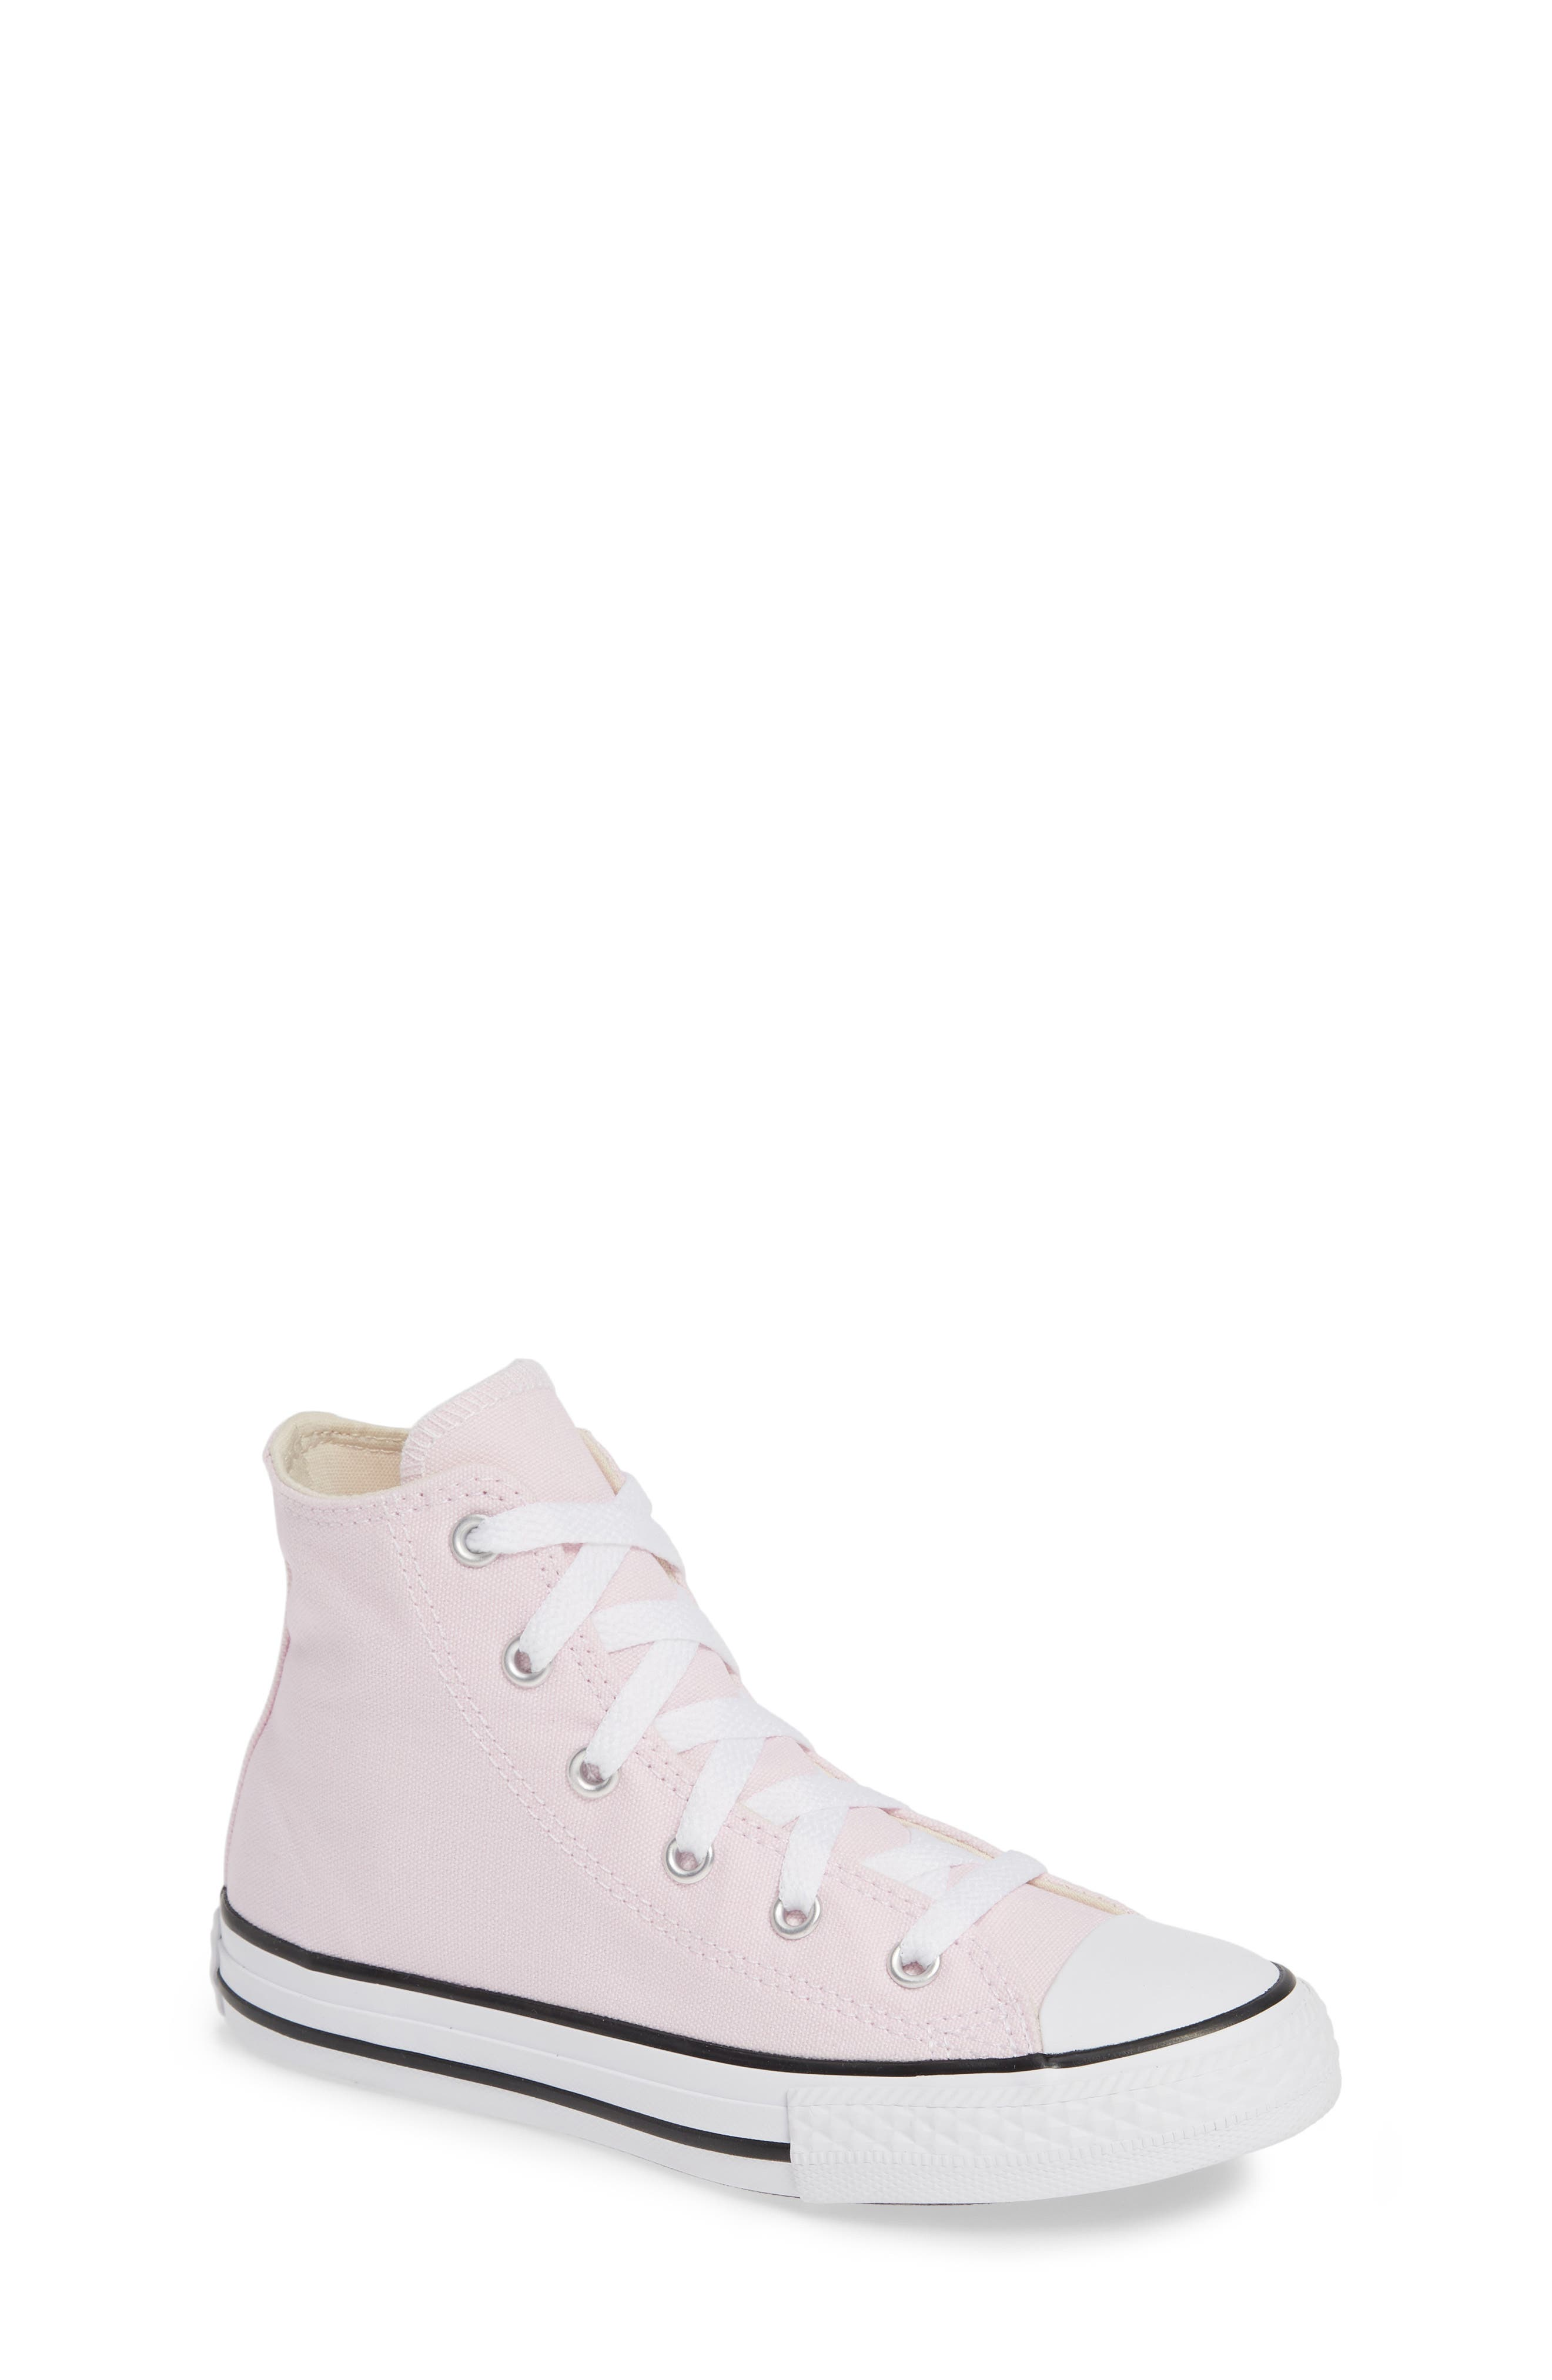 CONVERSE, Chuck Taylor<sup>®</sup> High Top Sneaker, Main thumbnail 1, color, PINK FOAM/ IVORY/ WHITE